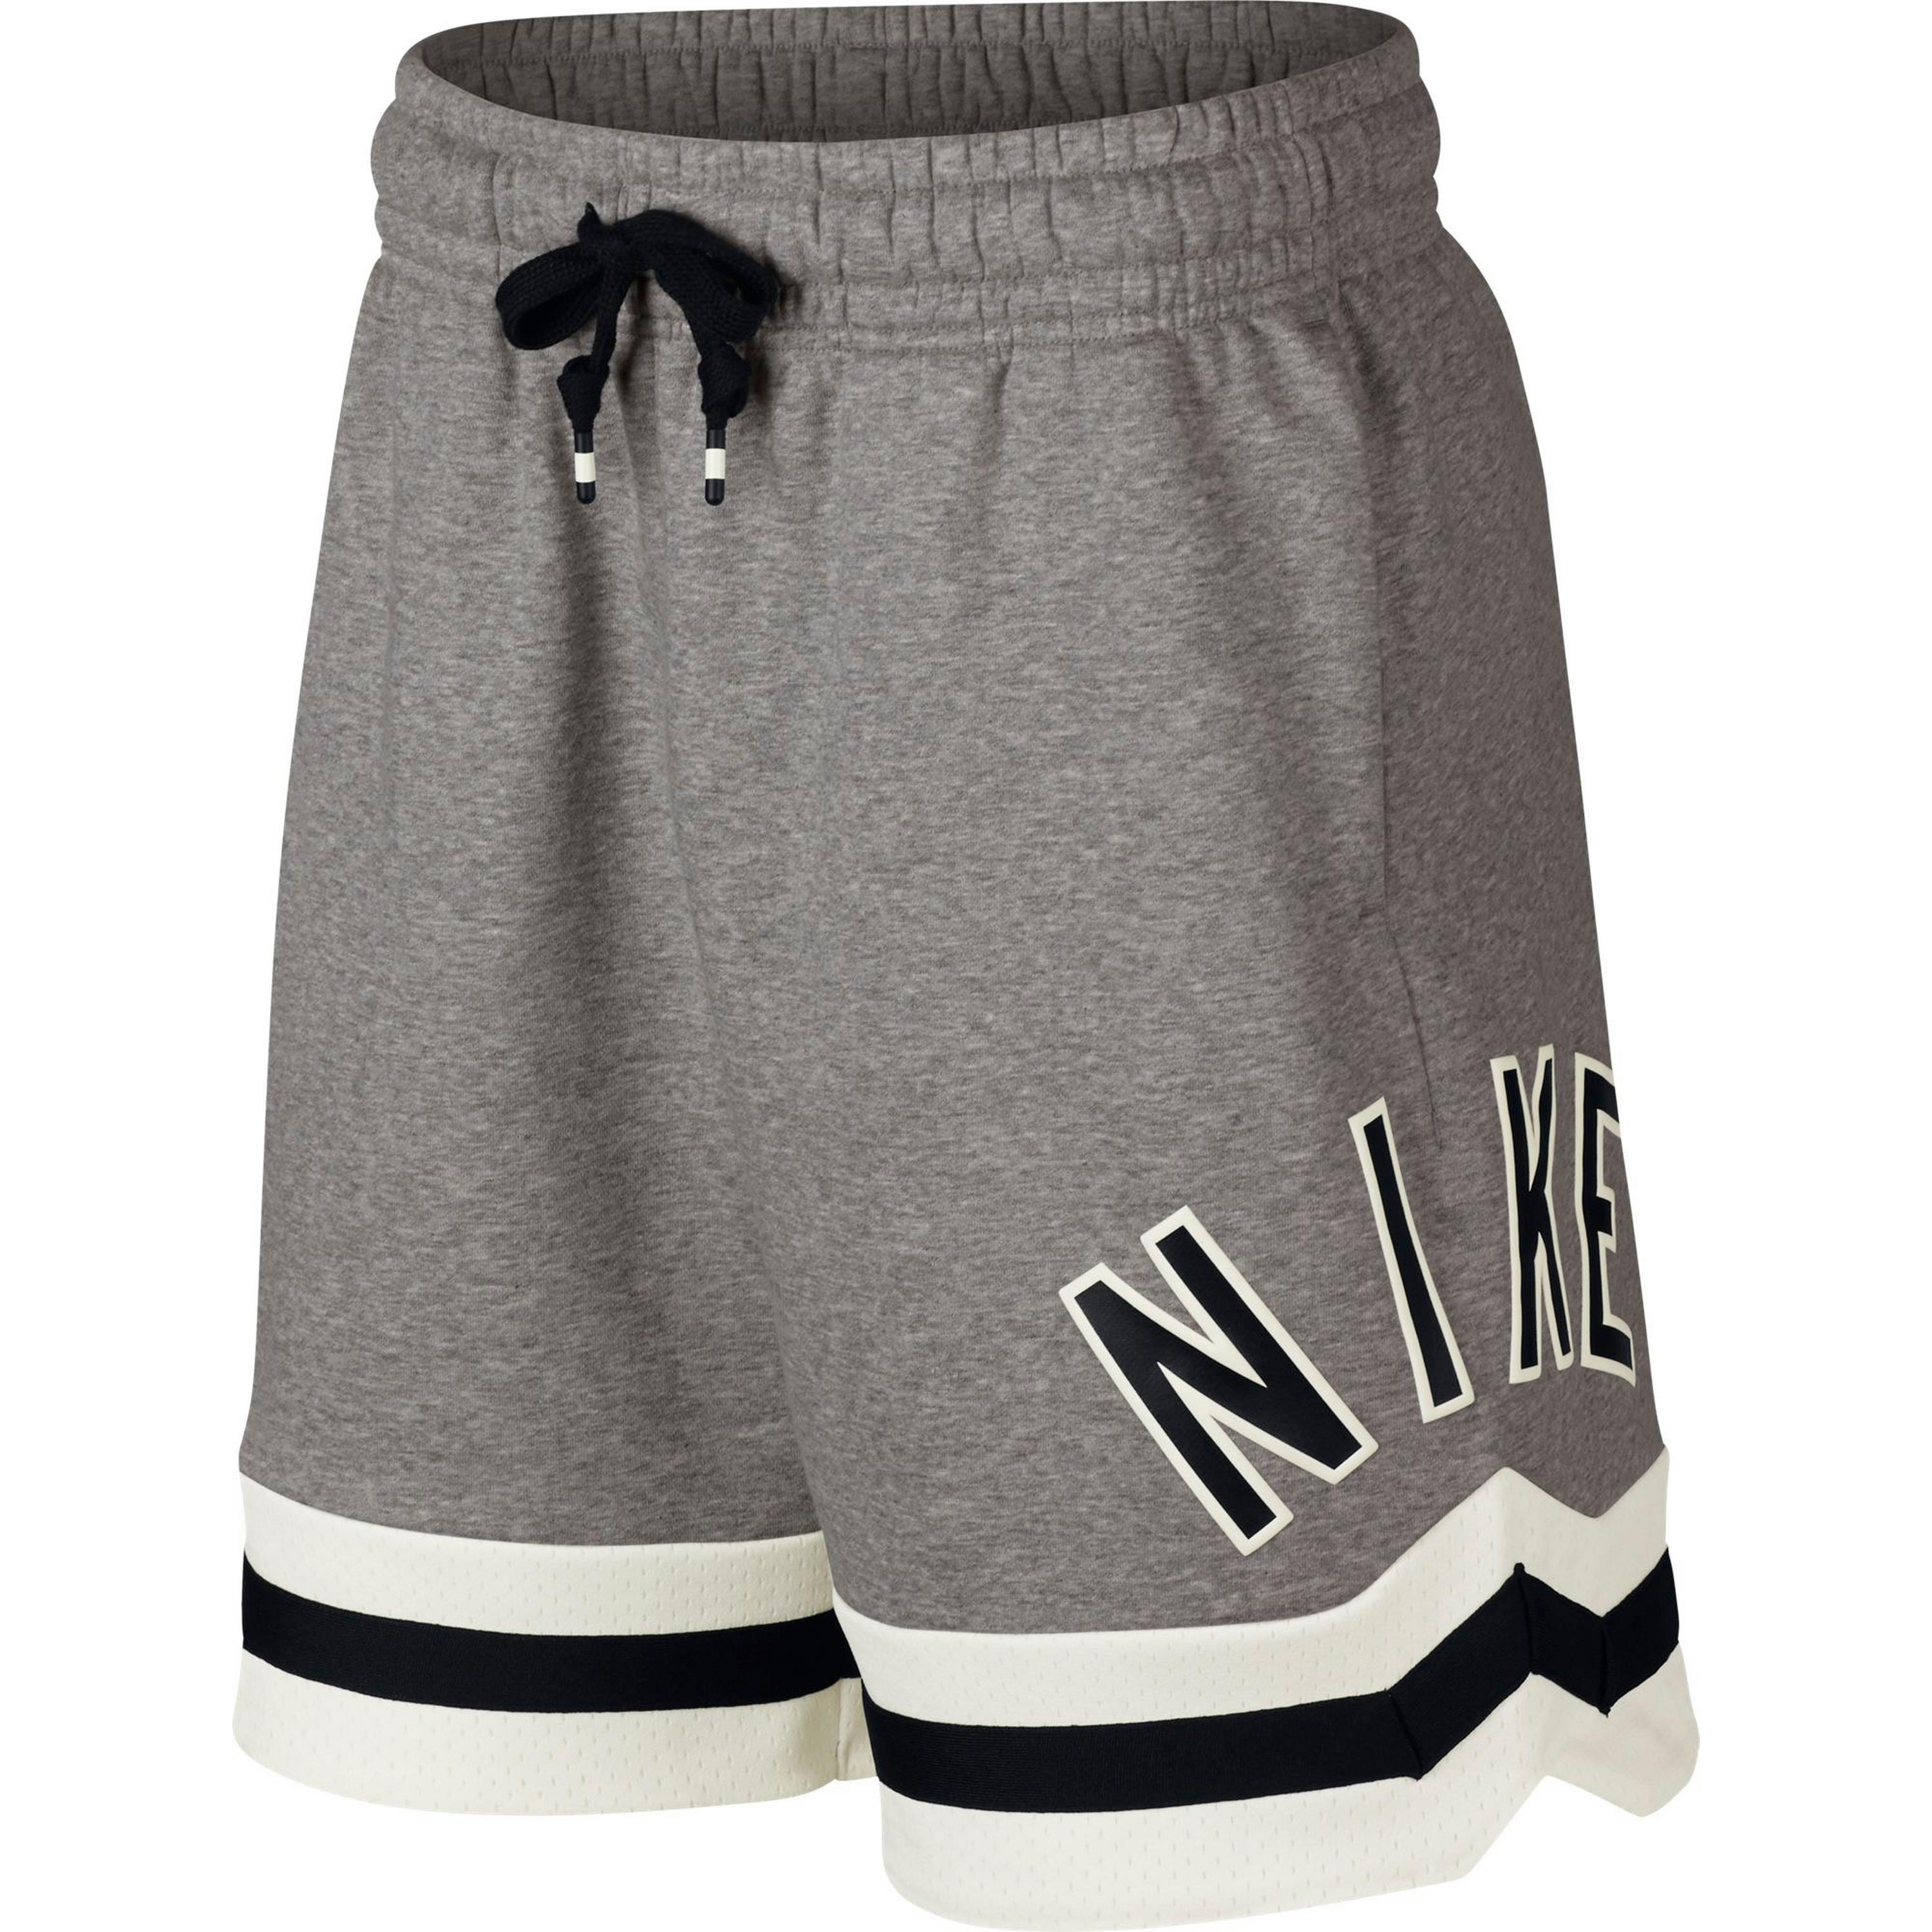 Nike NSW NIKE AIR Shorts Herren